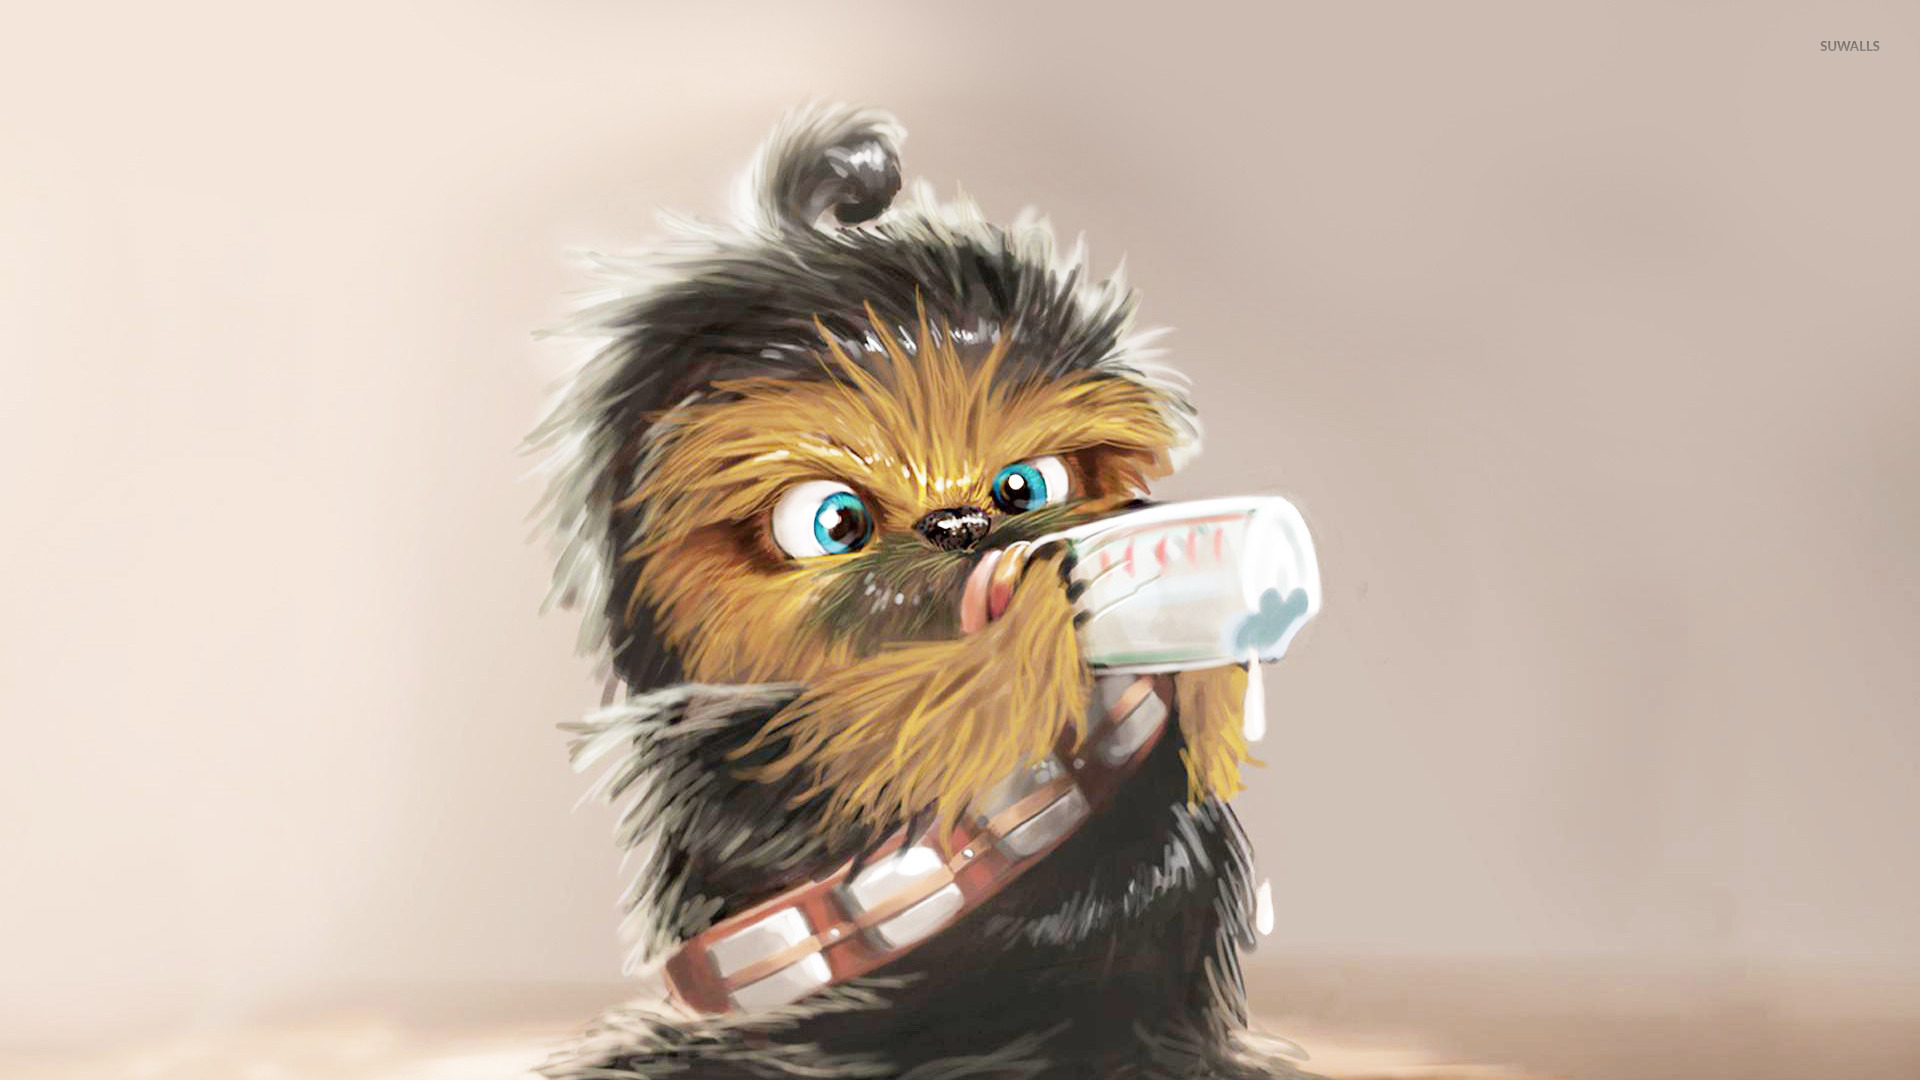 Princess Quotes Wallpaper Baby Chewbacca Wallpaper Funny Wallpapers 15023